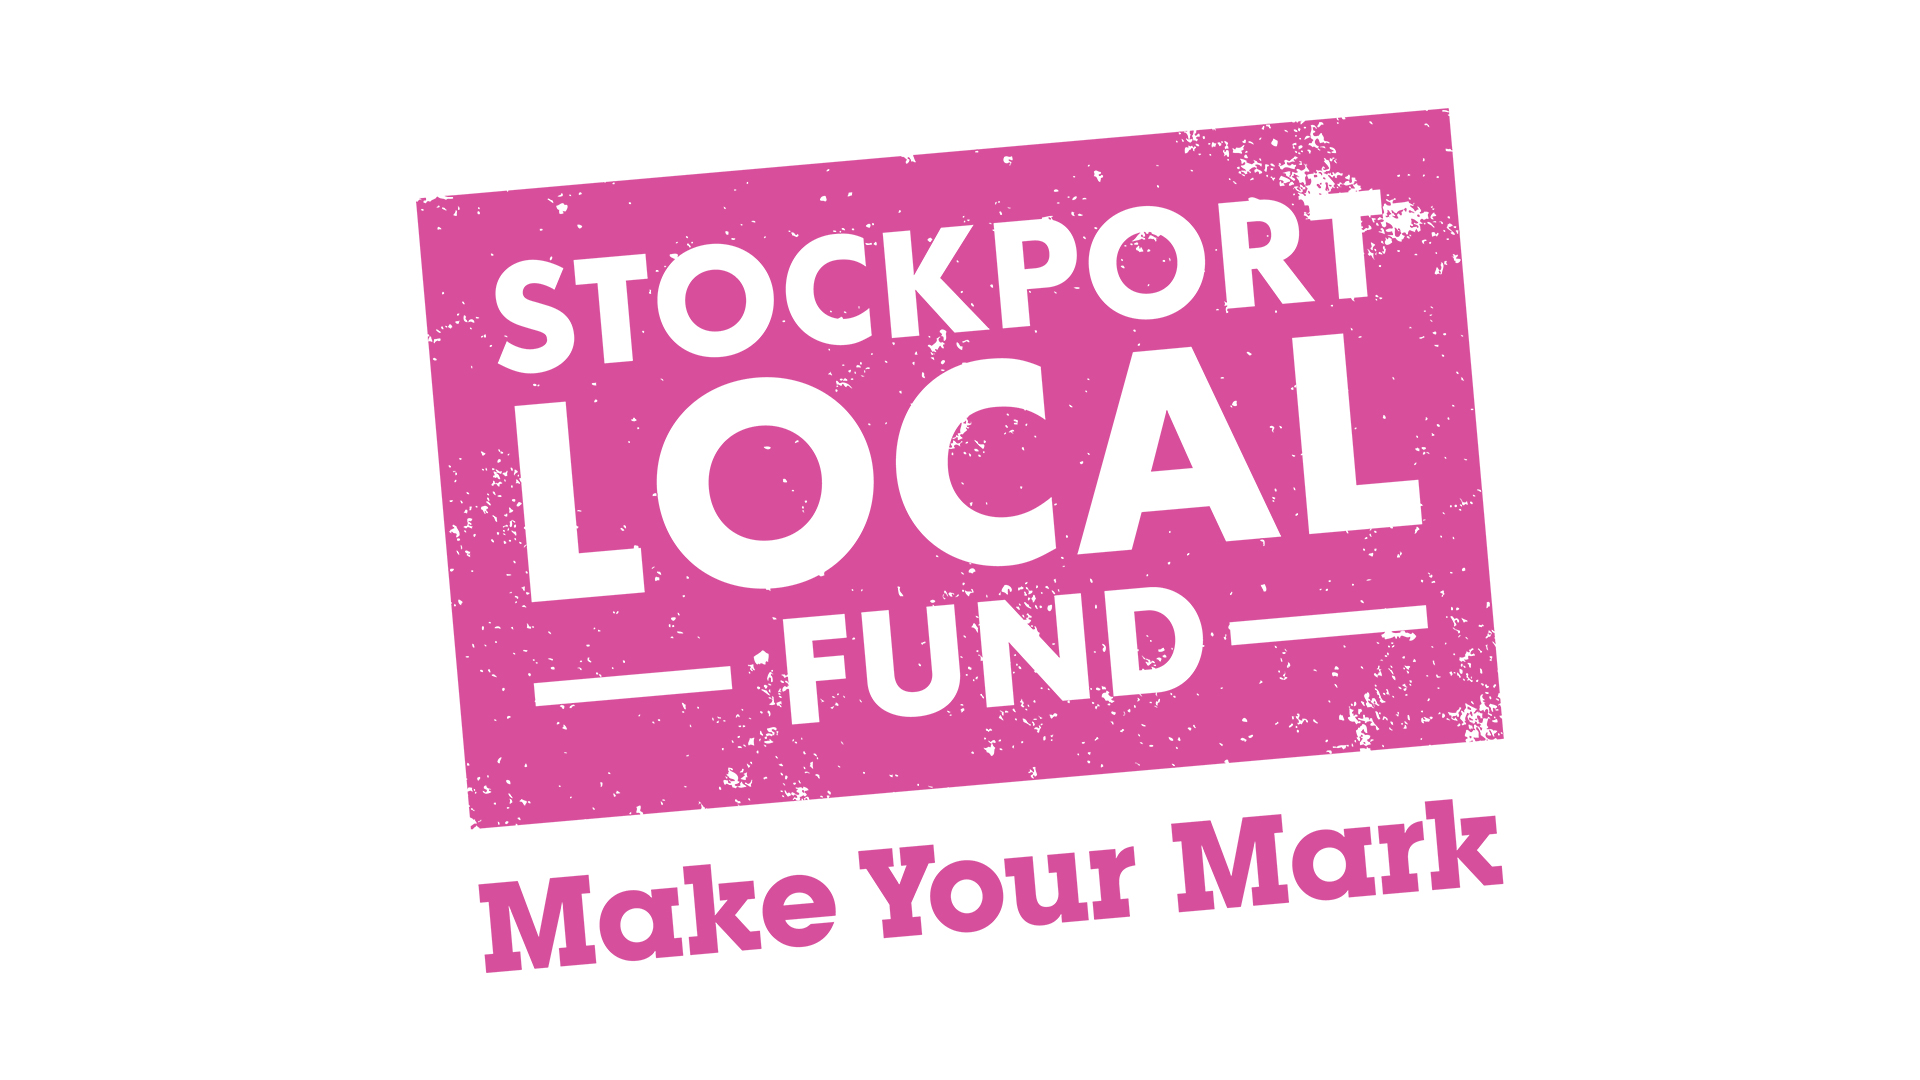 Stockport Local Fund is helping community projects that make a difference